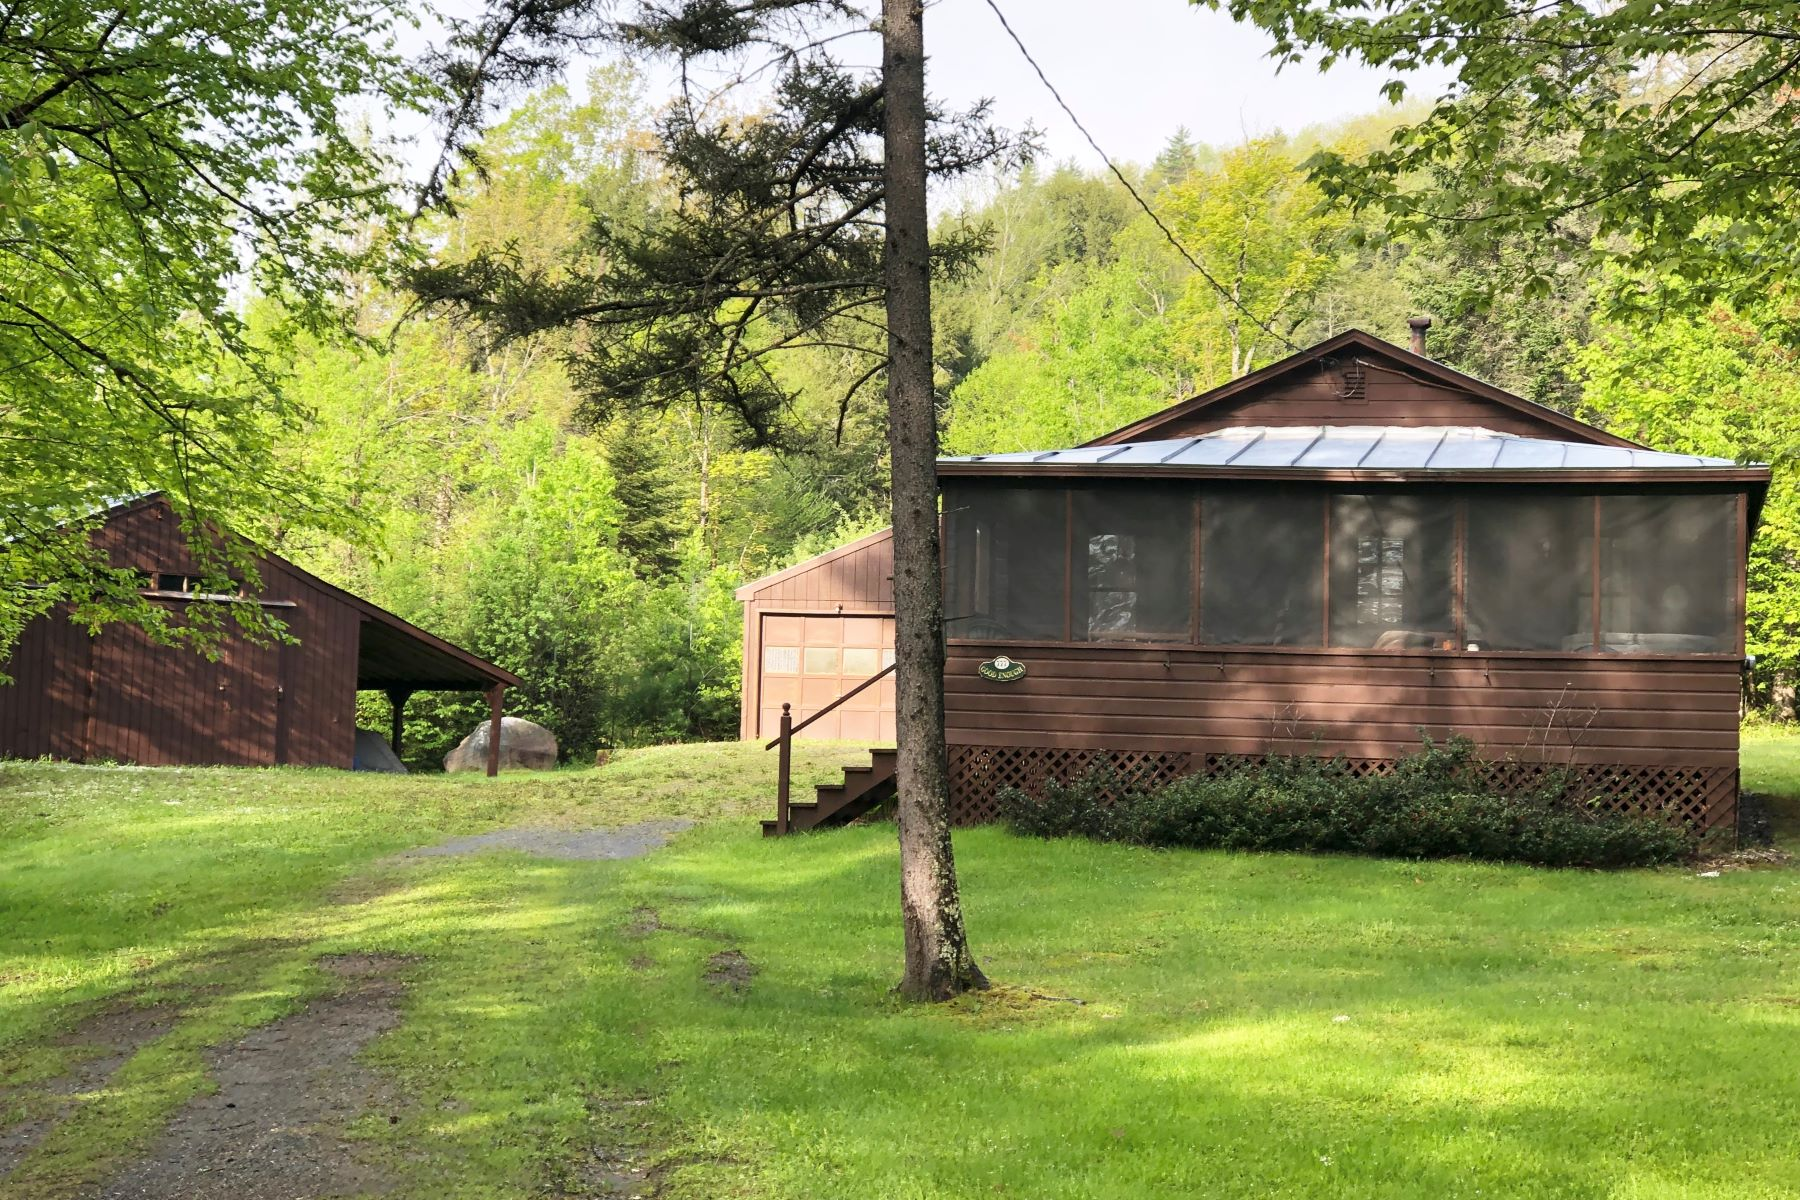 Single Family Homes for Sale at 777 Tenney Pond Road, Newbury 777 Tenney Pond Rd Newbury, Vermont 05051 United States